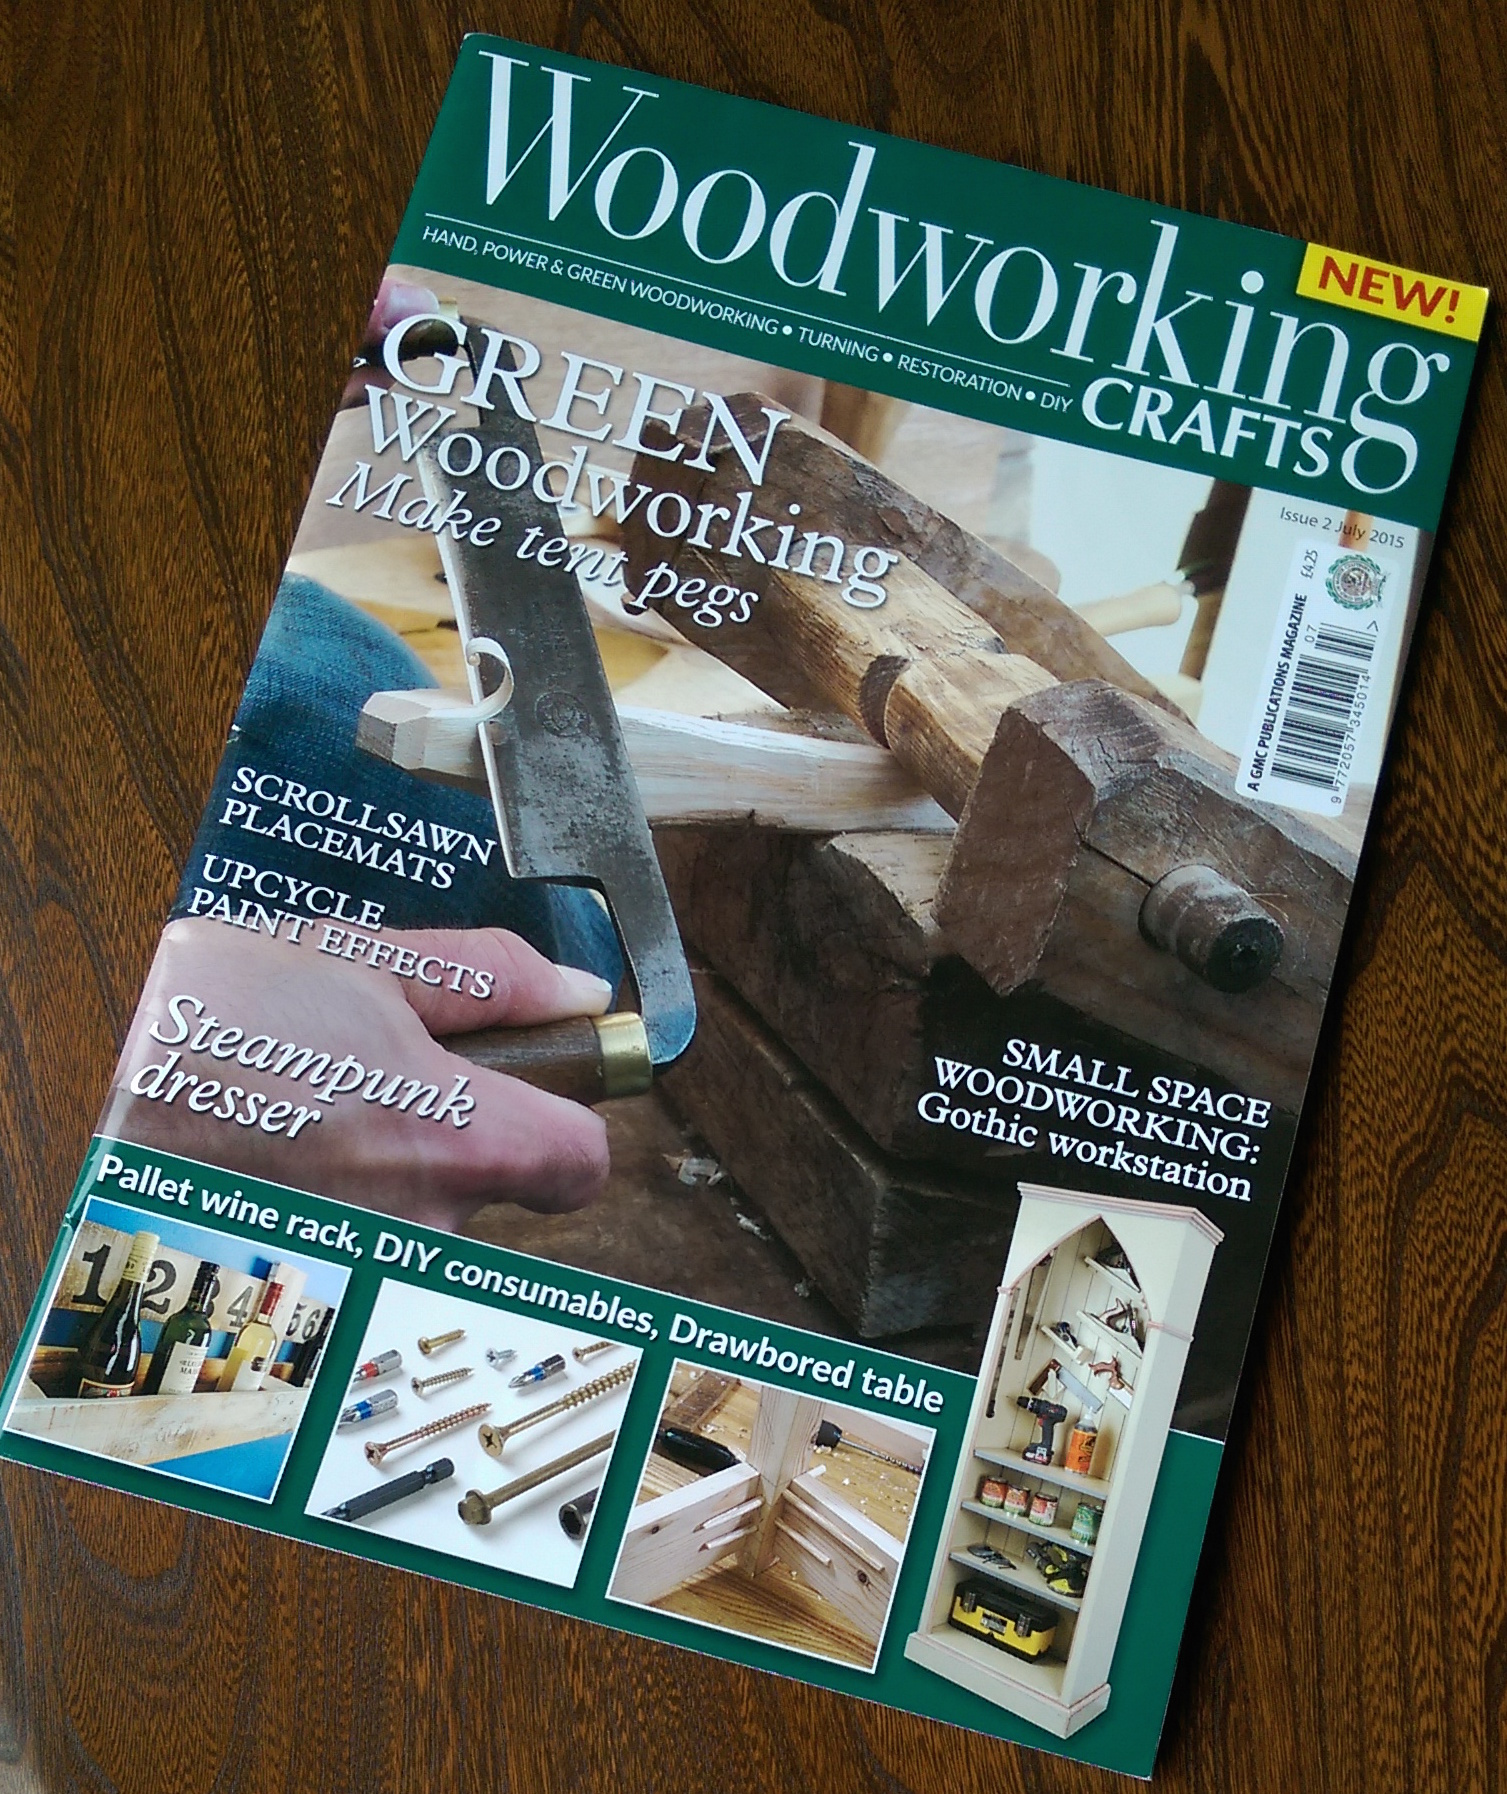 Woodworking crafts july